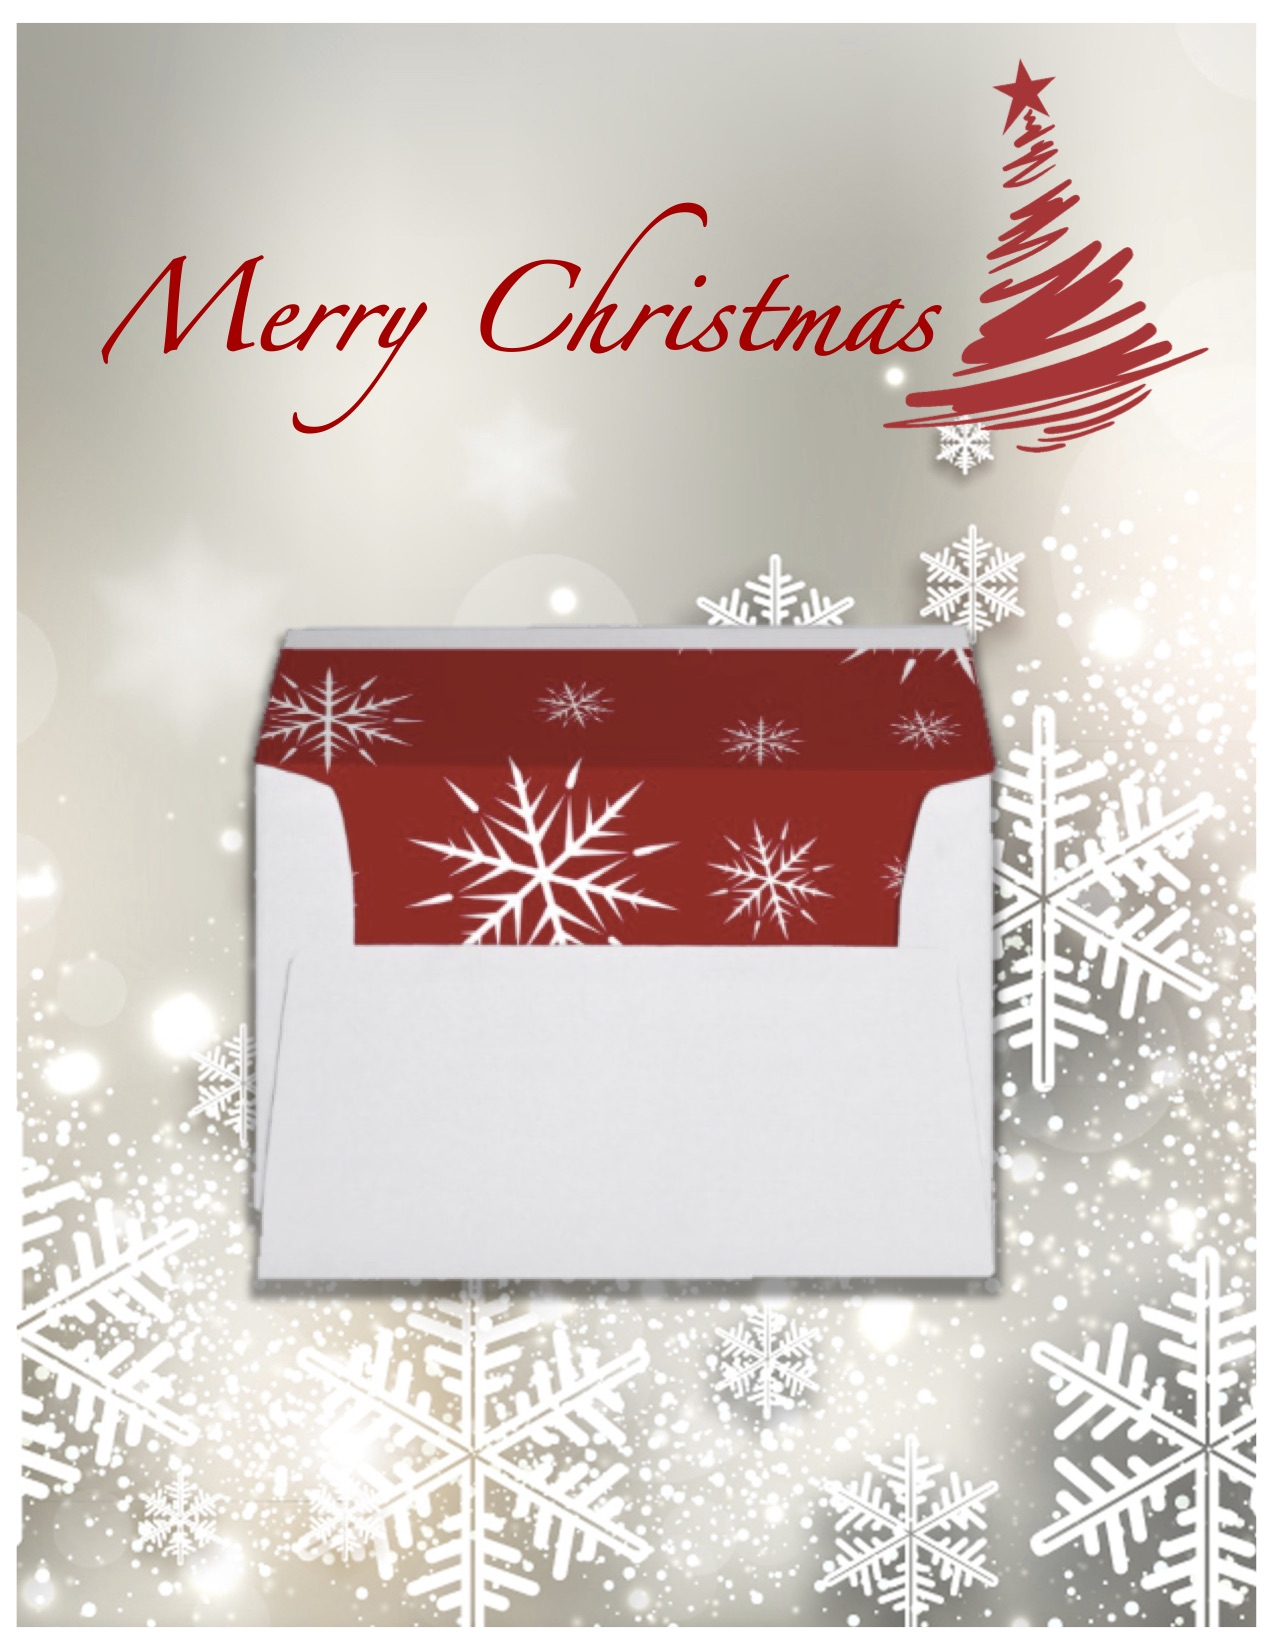 Christmas Cards for Hope Image .jpg